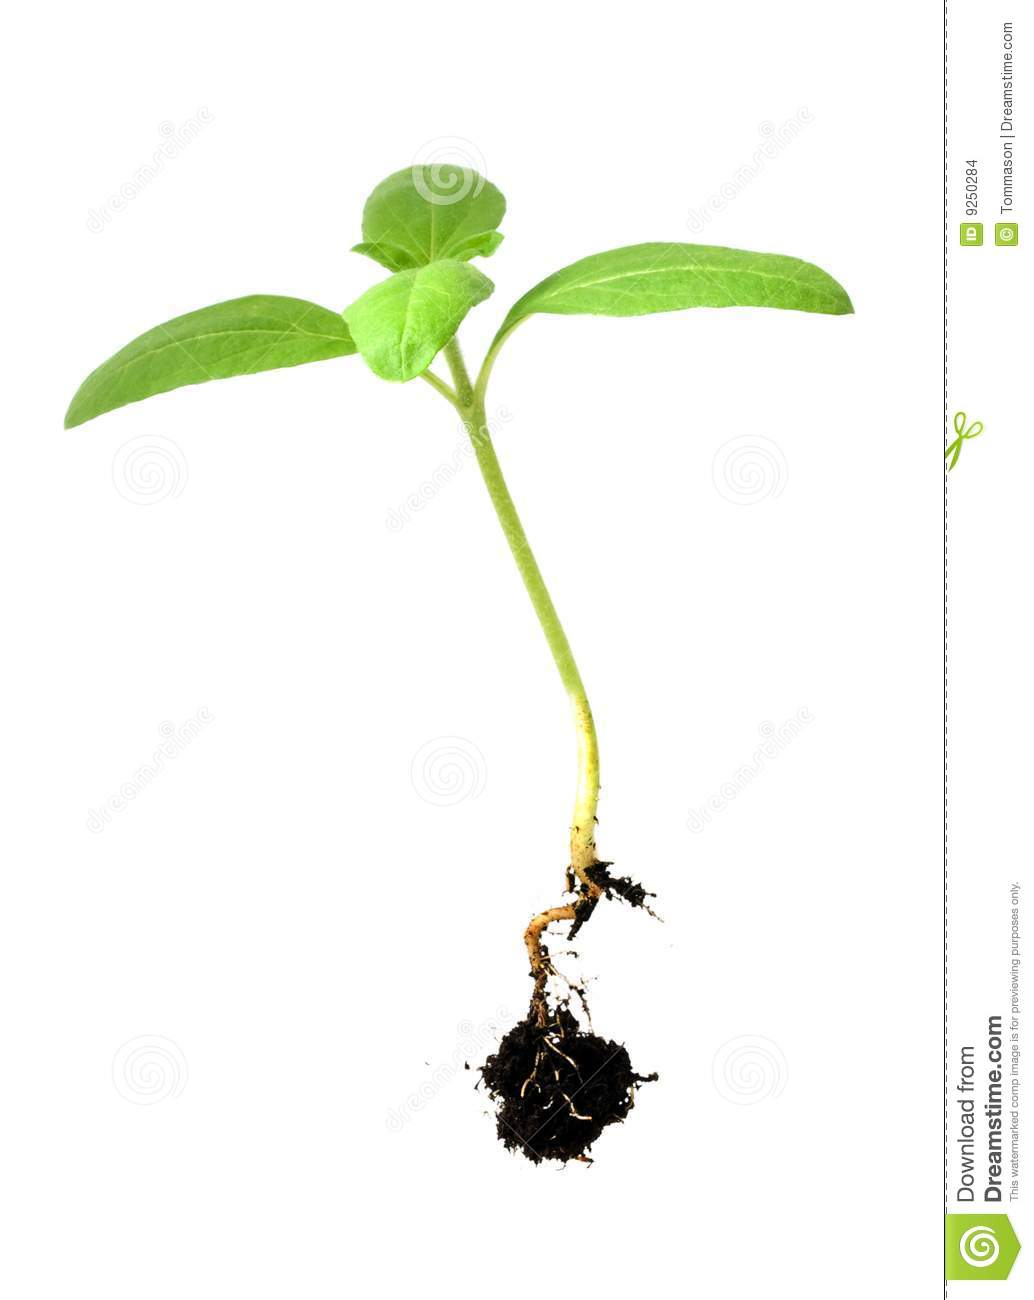 Plant Shoot Stock Images.